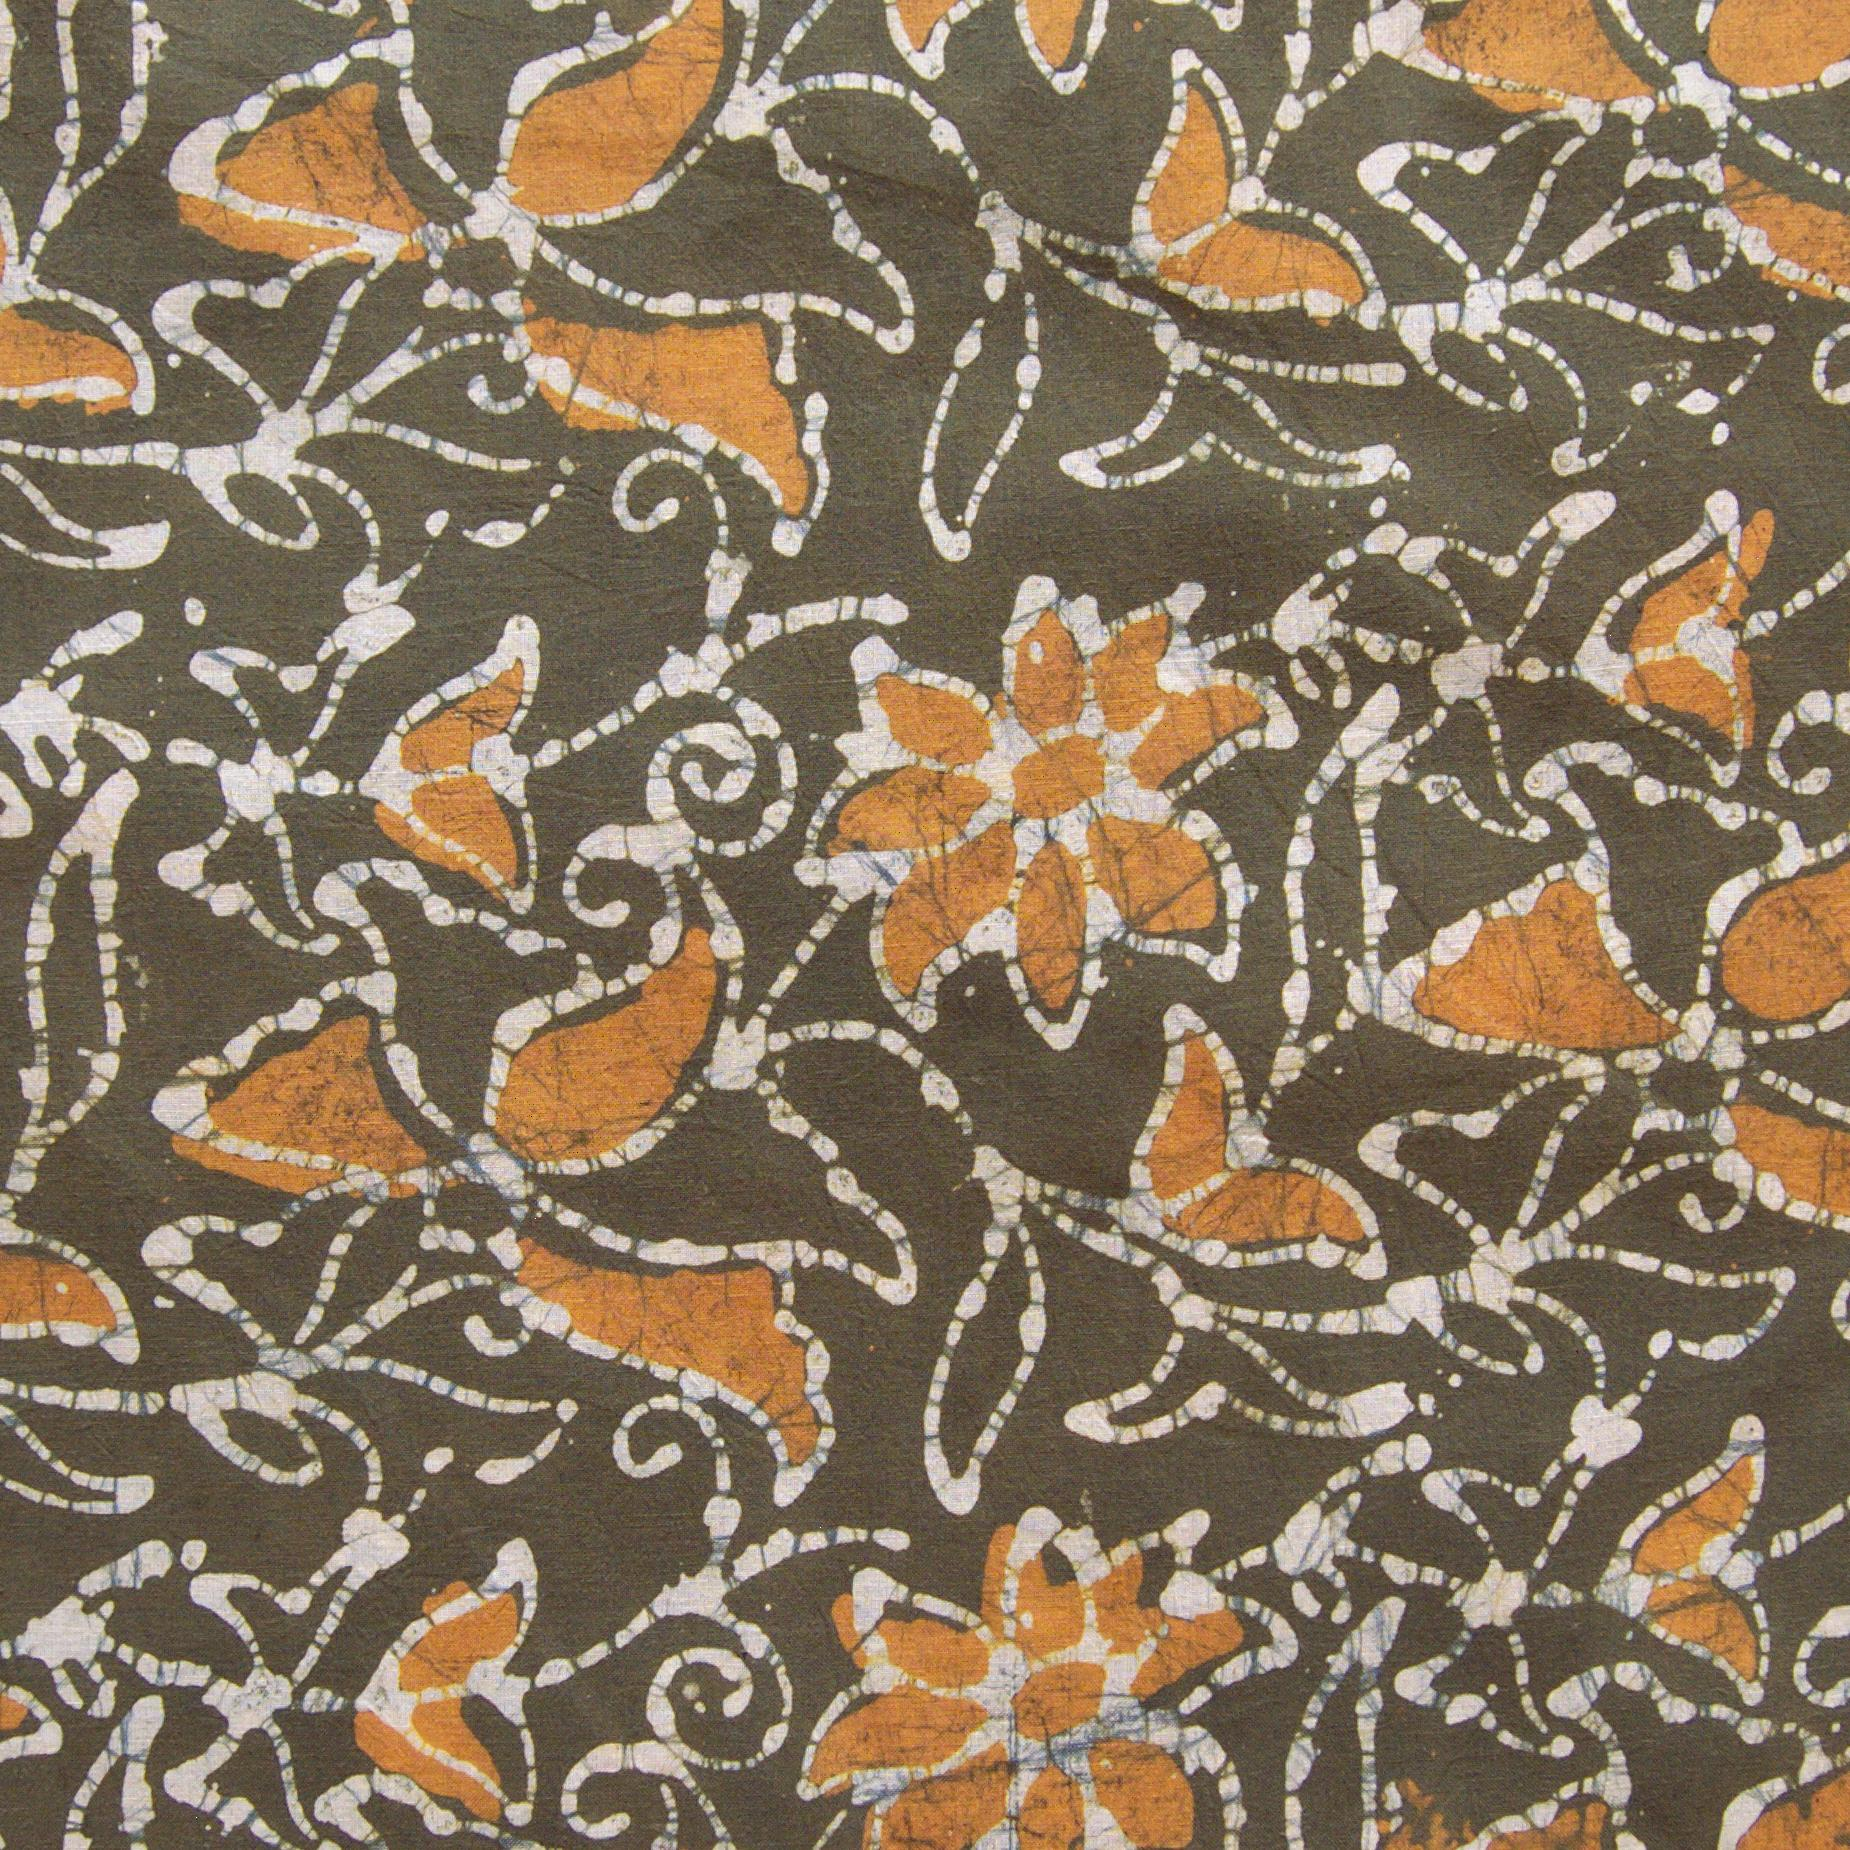 3 - SHA17 - 100% Block-Printed Batik Cotton Fabric From India - Clematis Motif - Flat - Live